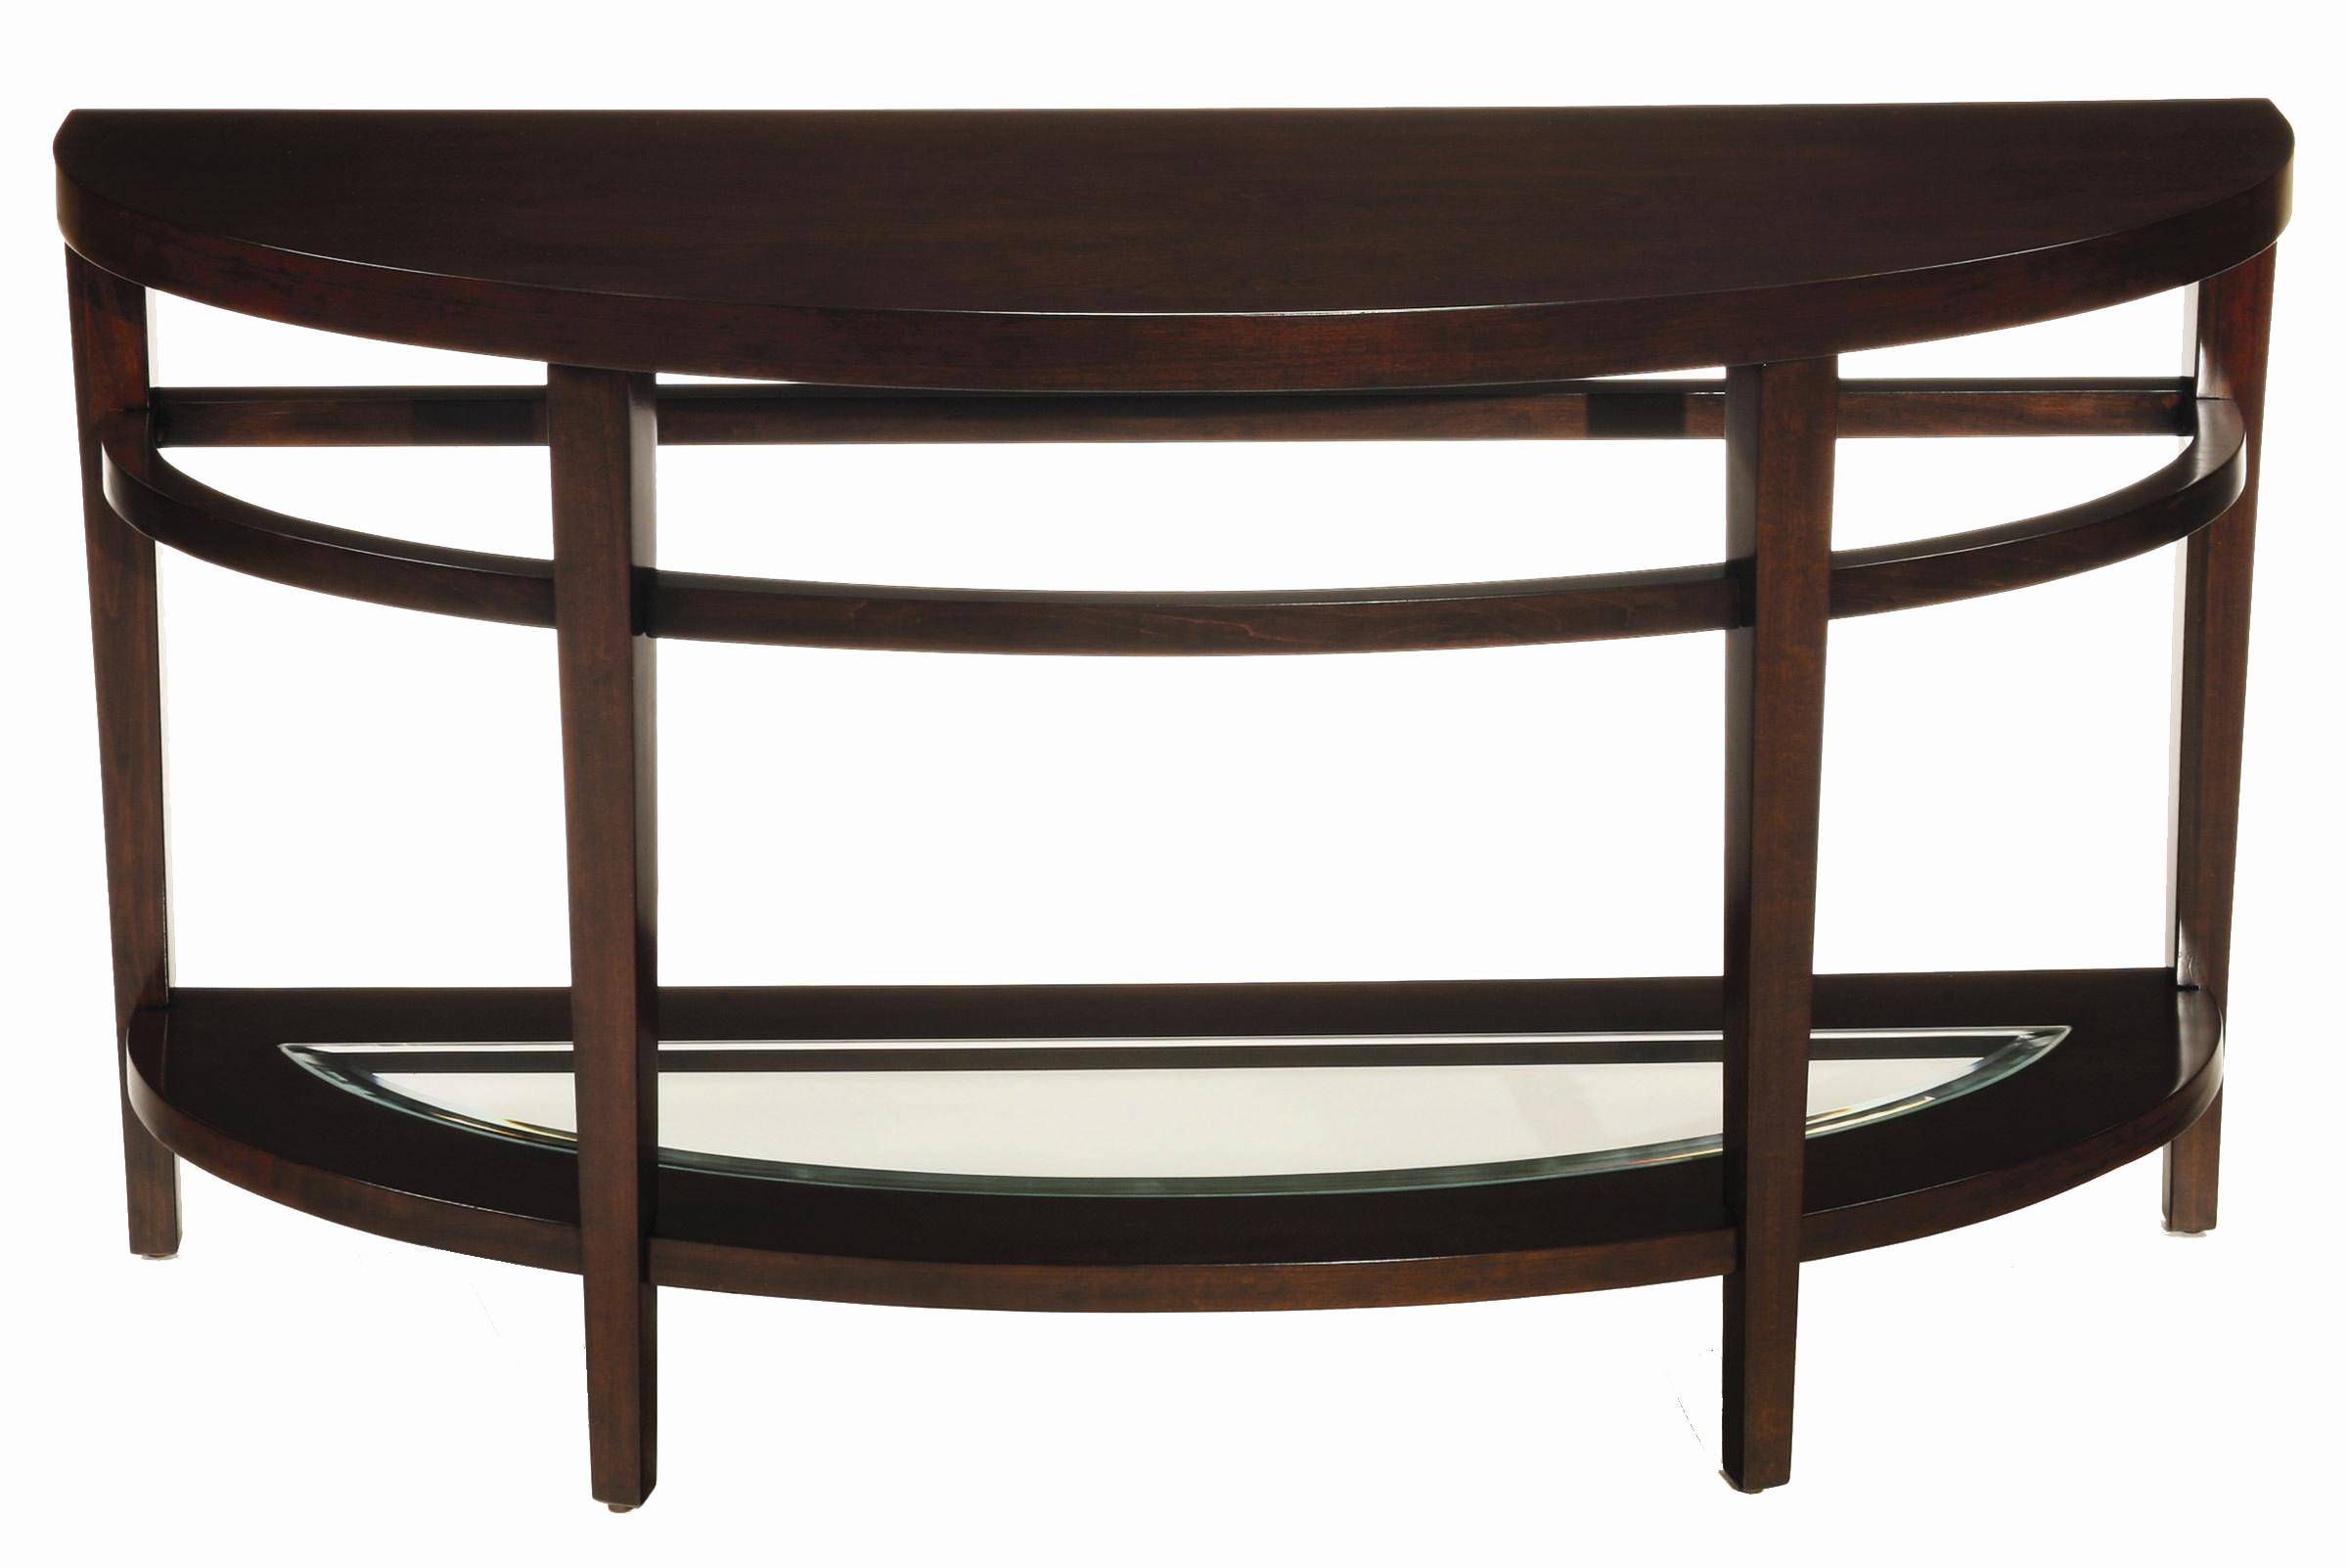 Morris Home Furnishings Urbana Atwell Ave Sofa Table - Item Number: T2081289-00